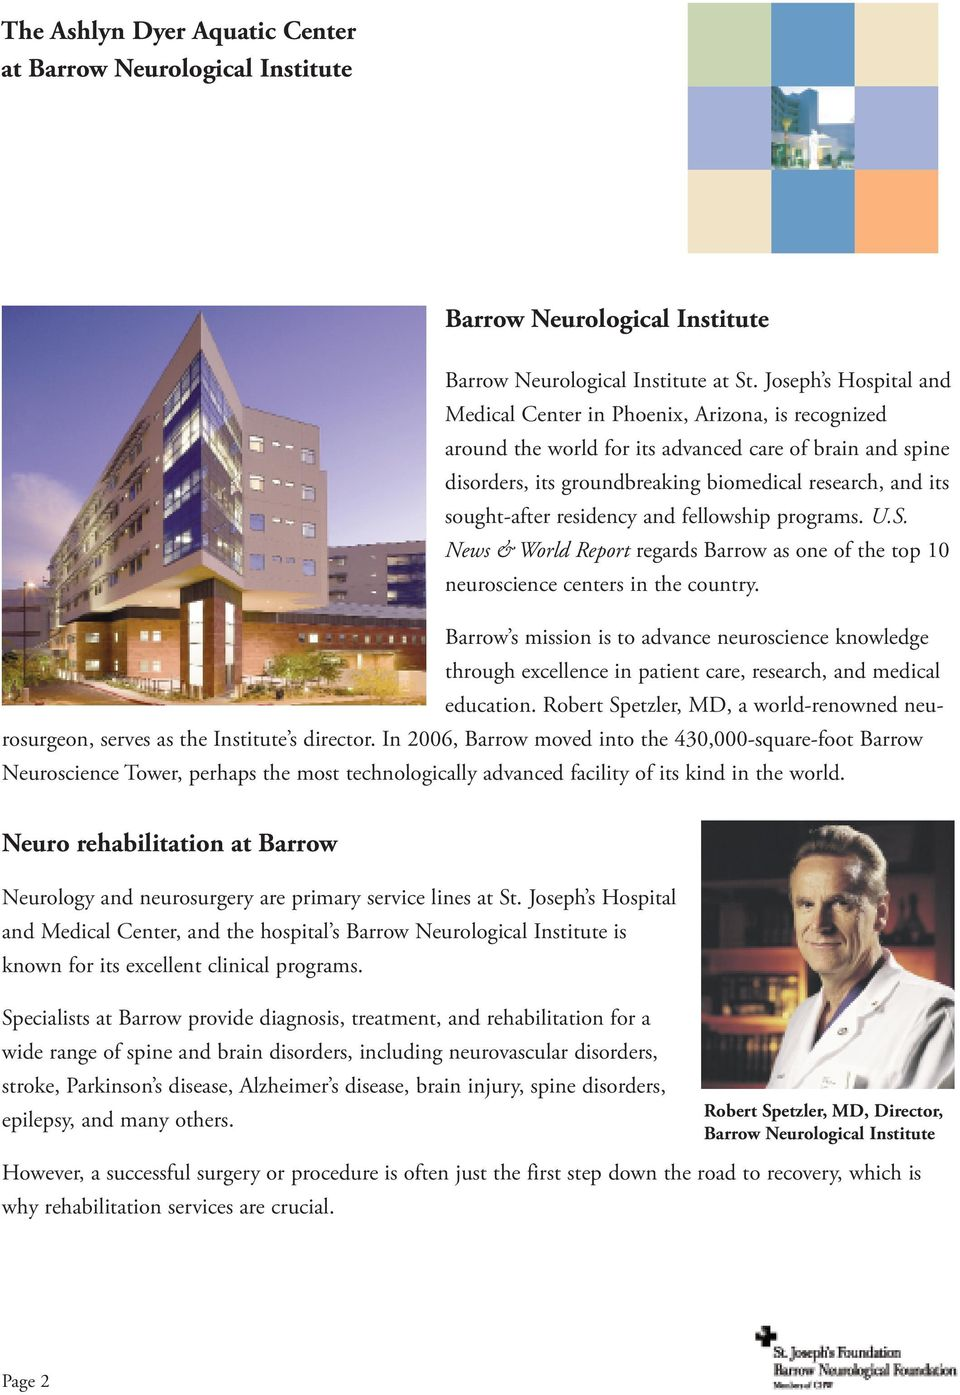 sought-after residency and fellowship programs. U.S. News & World Report regards Barrow as one of the top 10 neuroscience centers in the country.